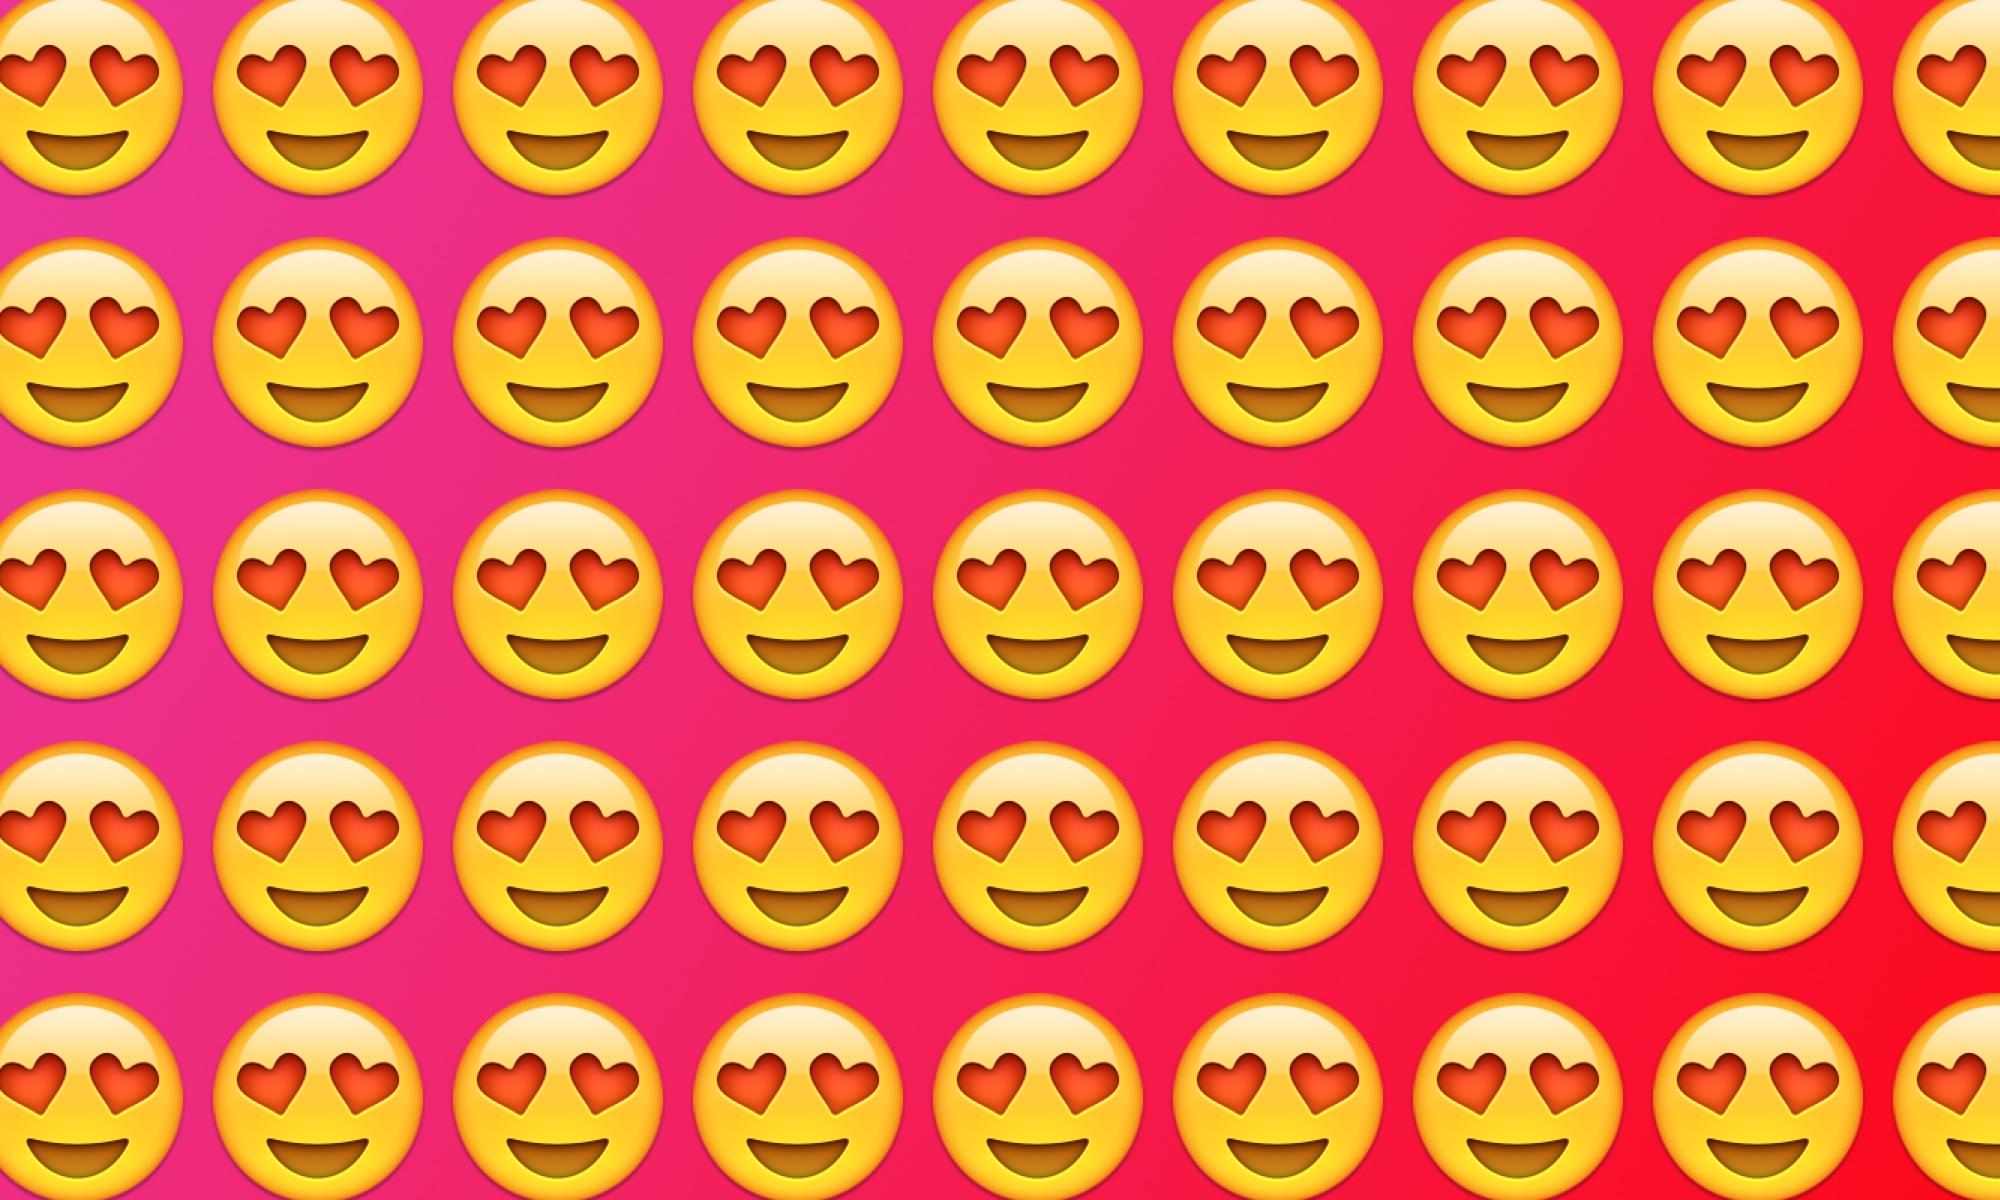 Emoji-Header-Emoji-Header-Smiling-Face-With-Heart-Shaped-Eyes-Emojipedia